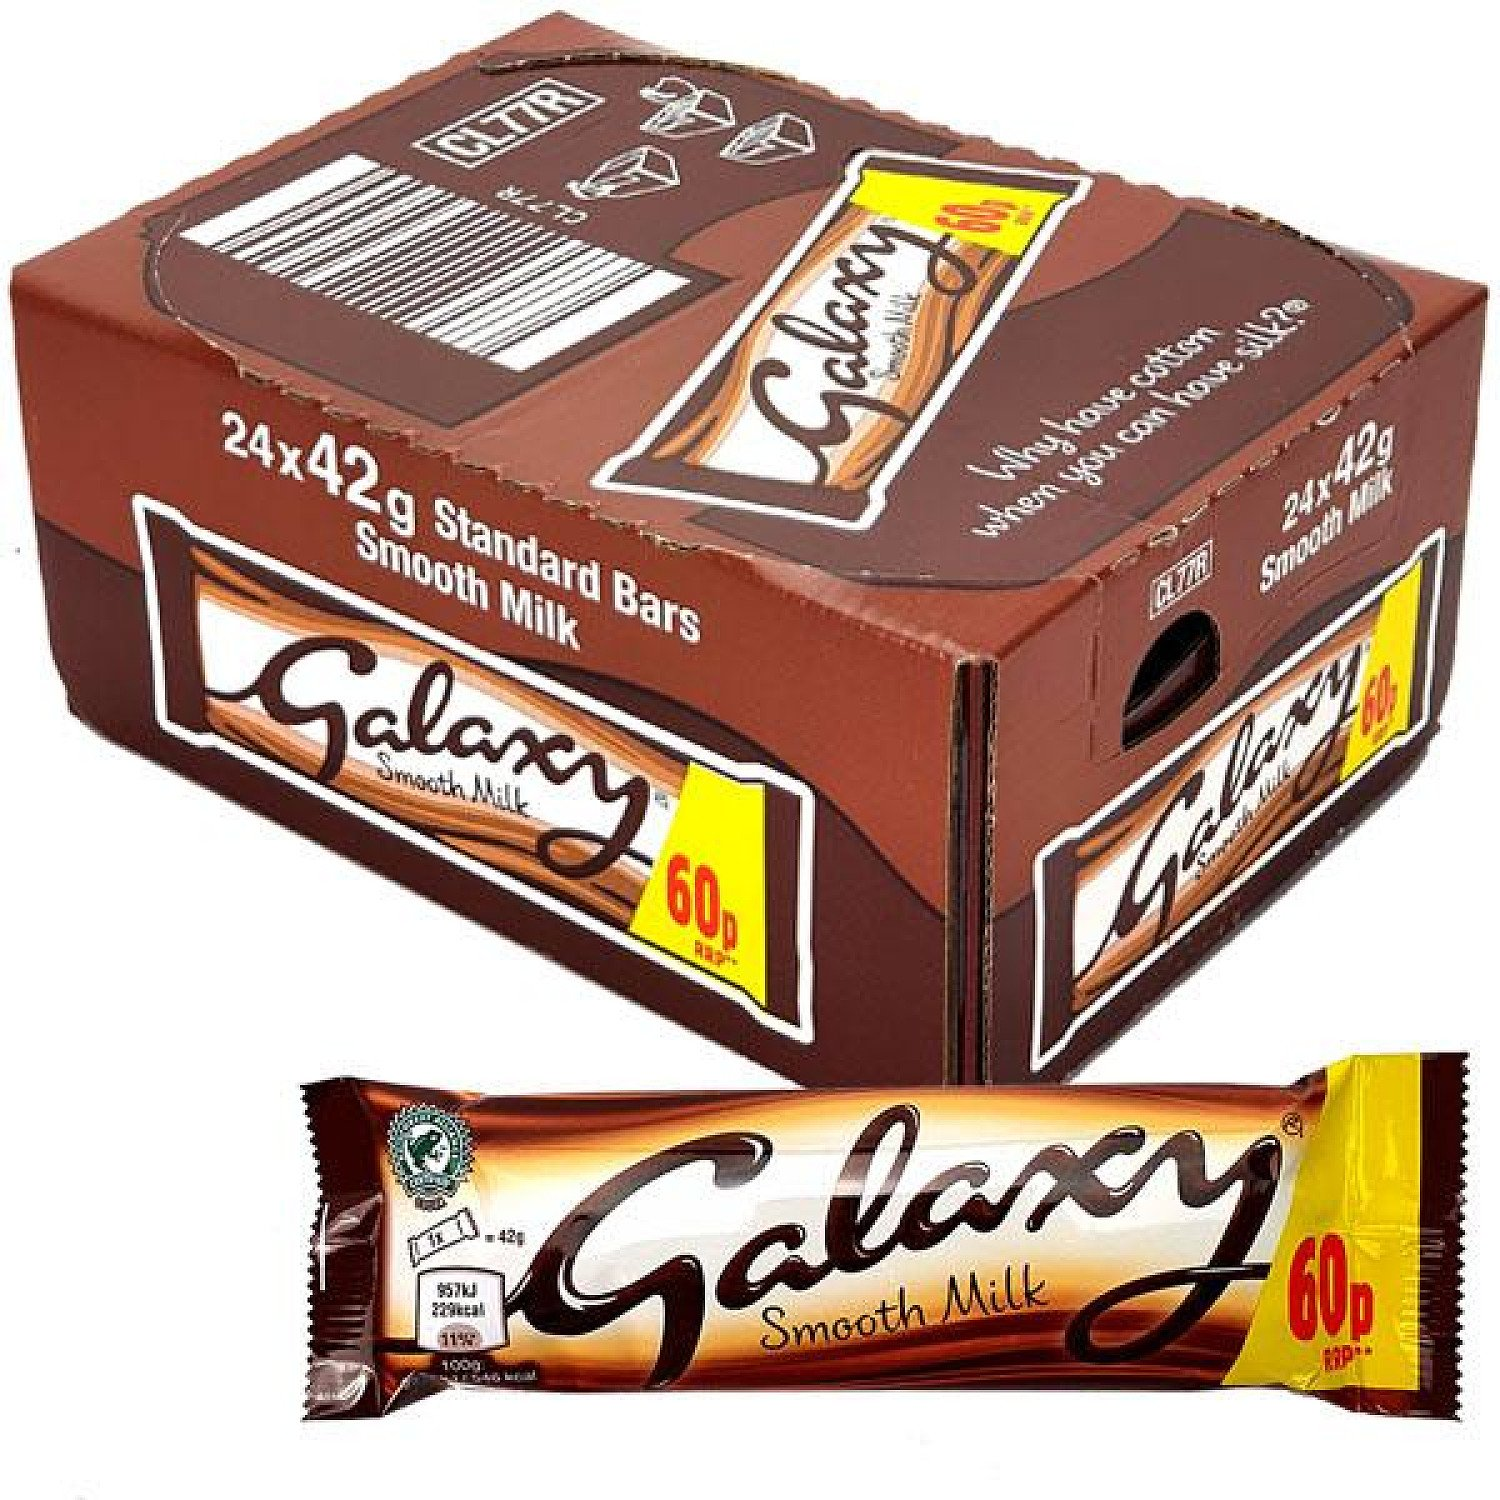 24 X GALAXY SMOOTH MILK 42G STANDARD CHOCOLATE BARS Free Postage